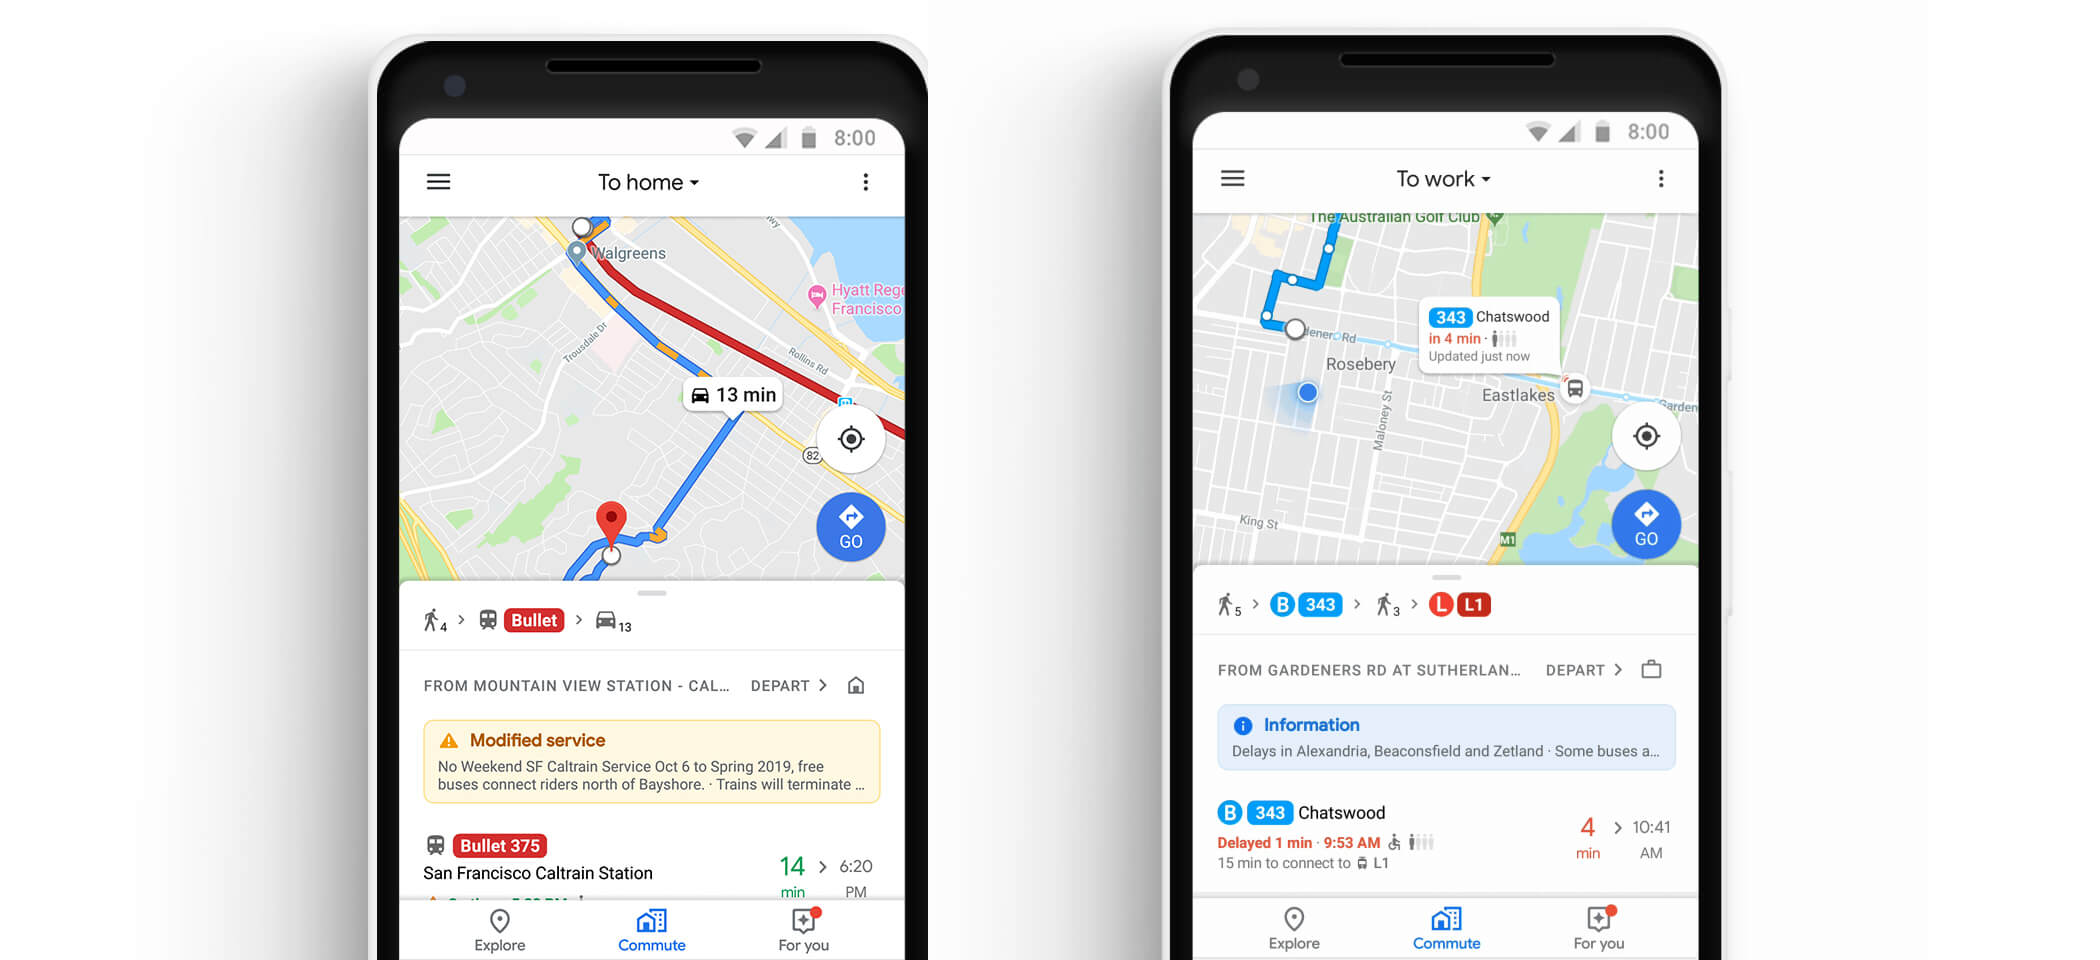 Google Maps adds new commute tab and music streaming ... on google map turkey, gasbuddy app, craigslist app, google earth, google docs app, google map art, google app icon, google circles app, google books app, weather app, google world app, evernote app, google texting app, google calendar, google search app, google mapquest, google navigation app, google map from to, traductor google app,